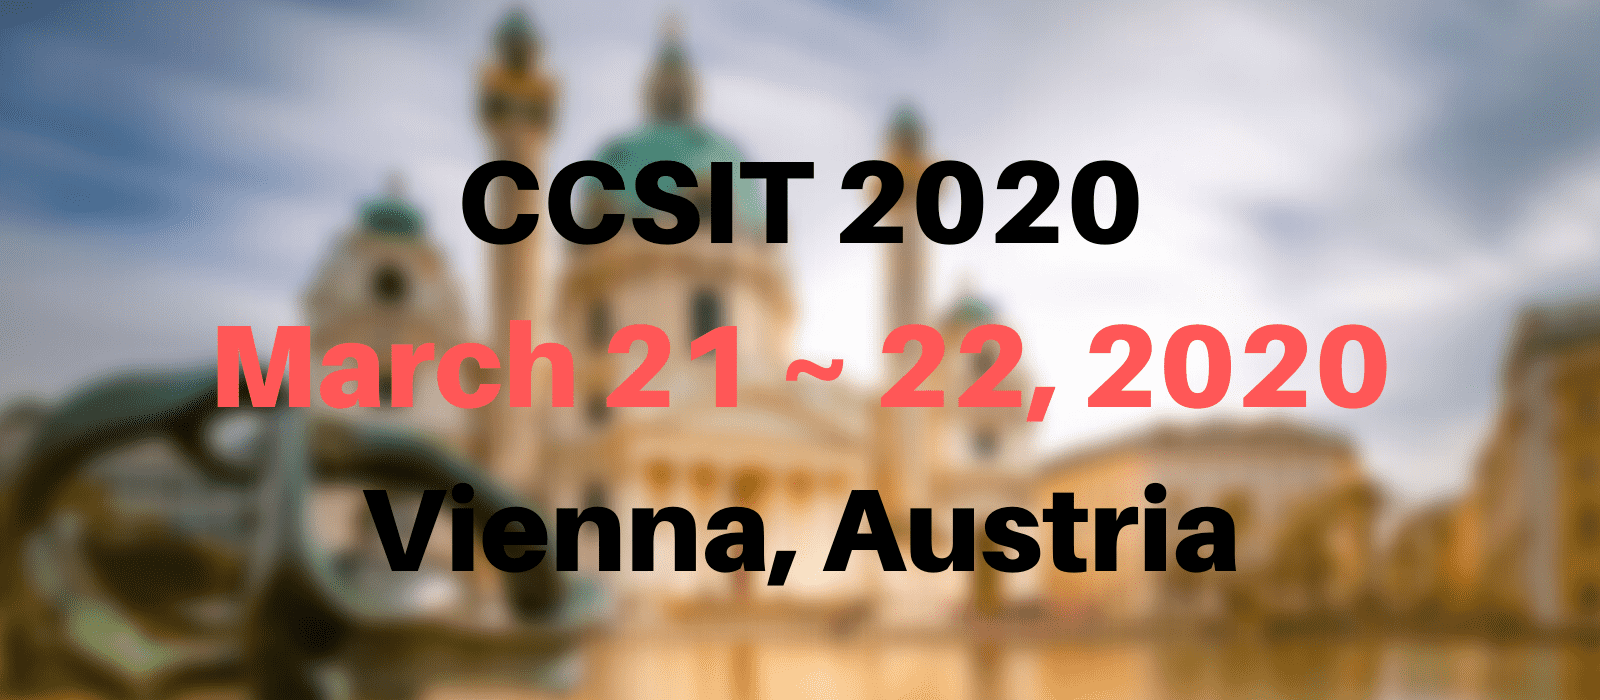 10th International Conference on Computer Science and Information Technology (CCSIT 2020)